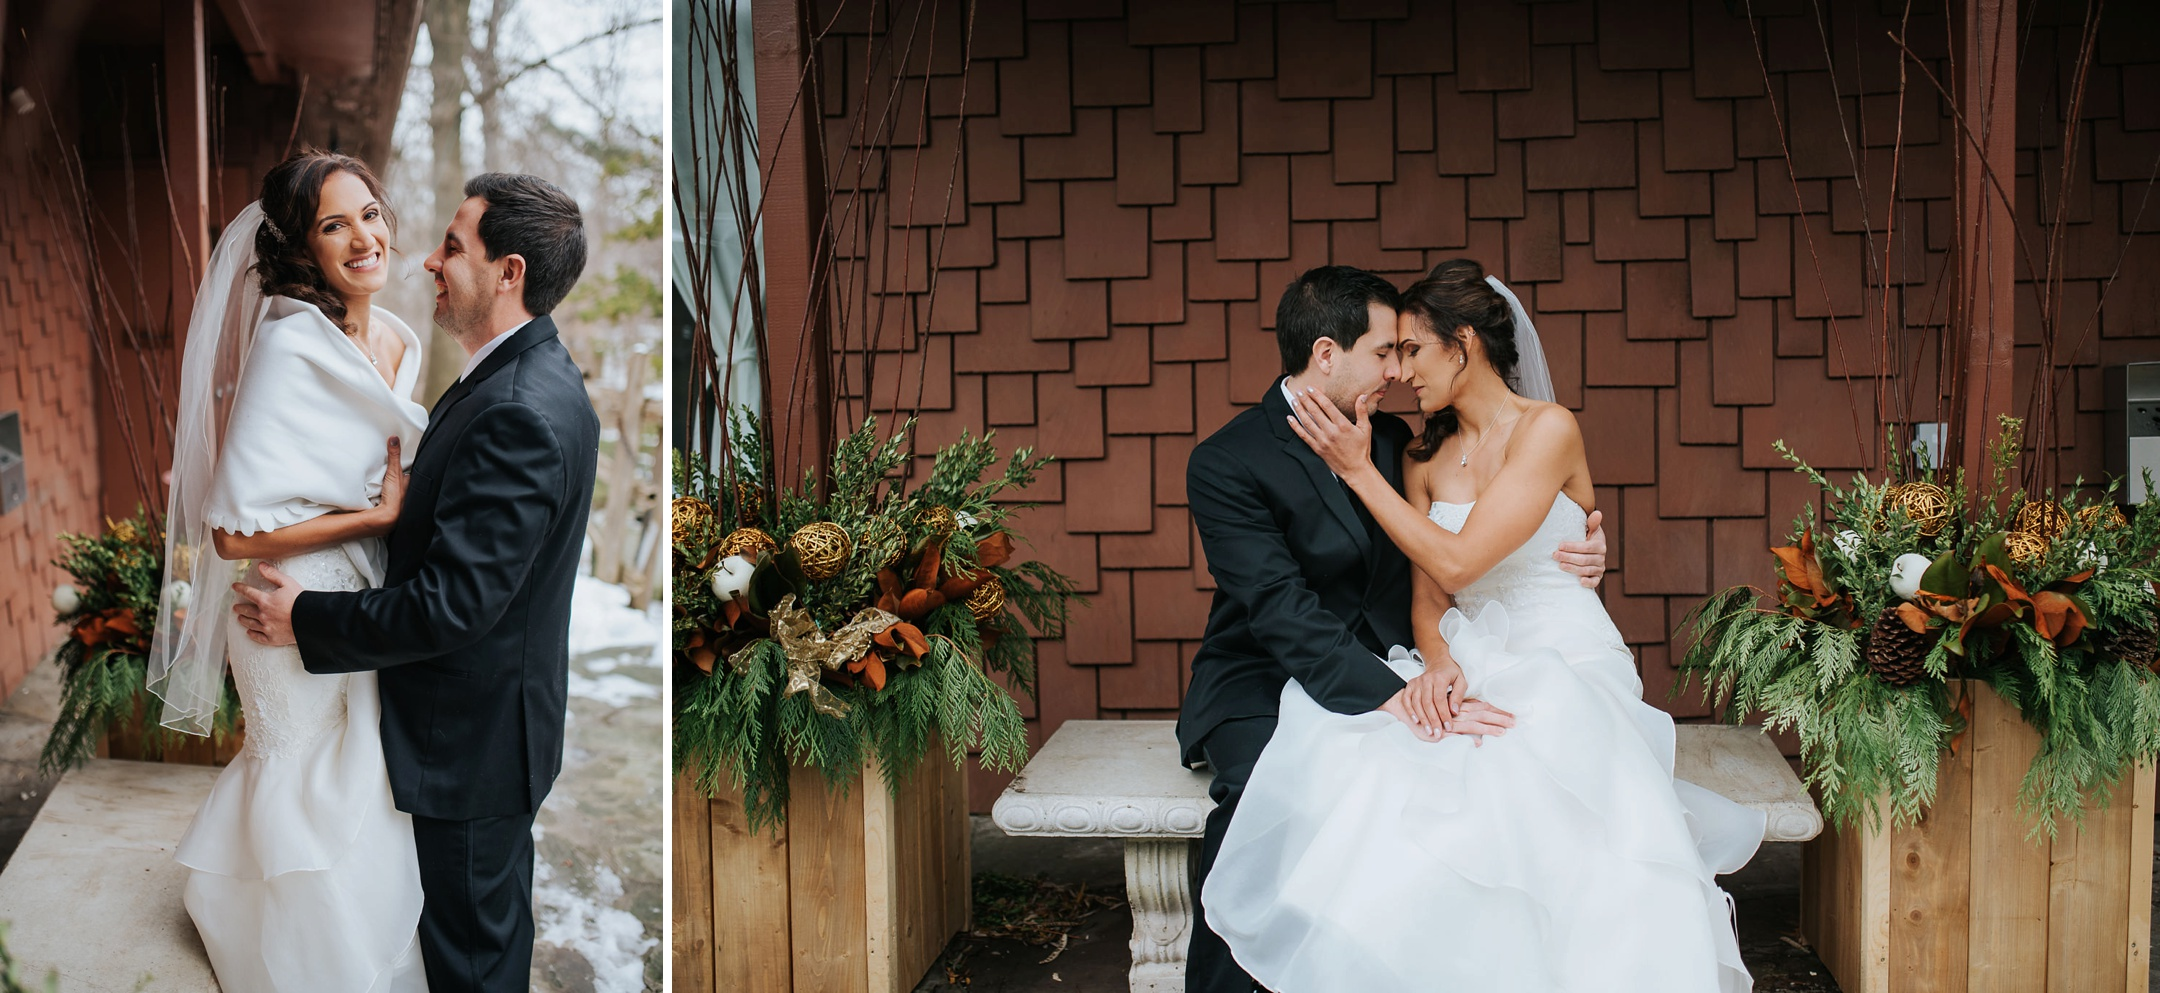 bride and groom winter wedding at fantasy farm toronto